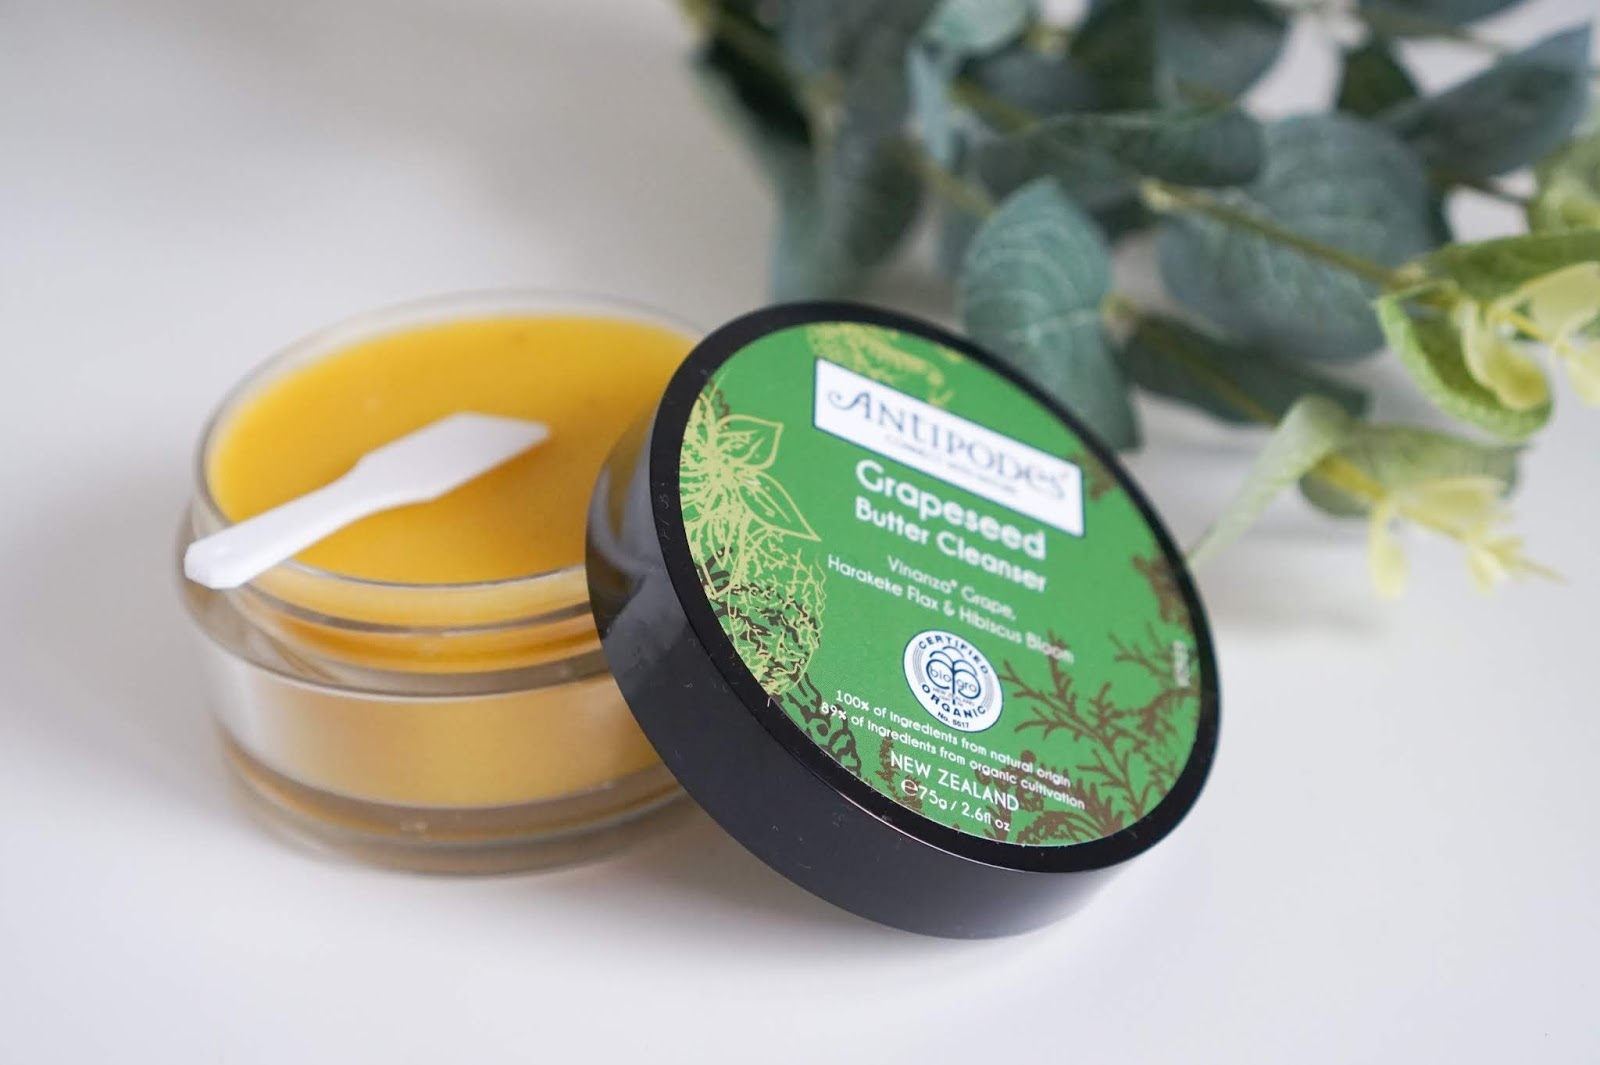 Antipodes_Grapeseed_Butter_Cleanser